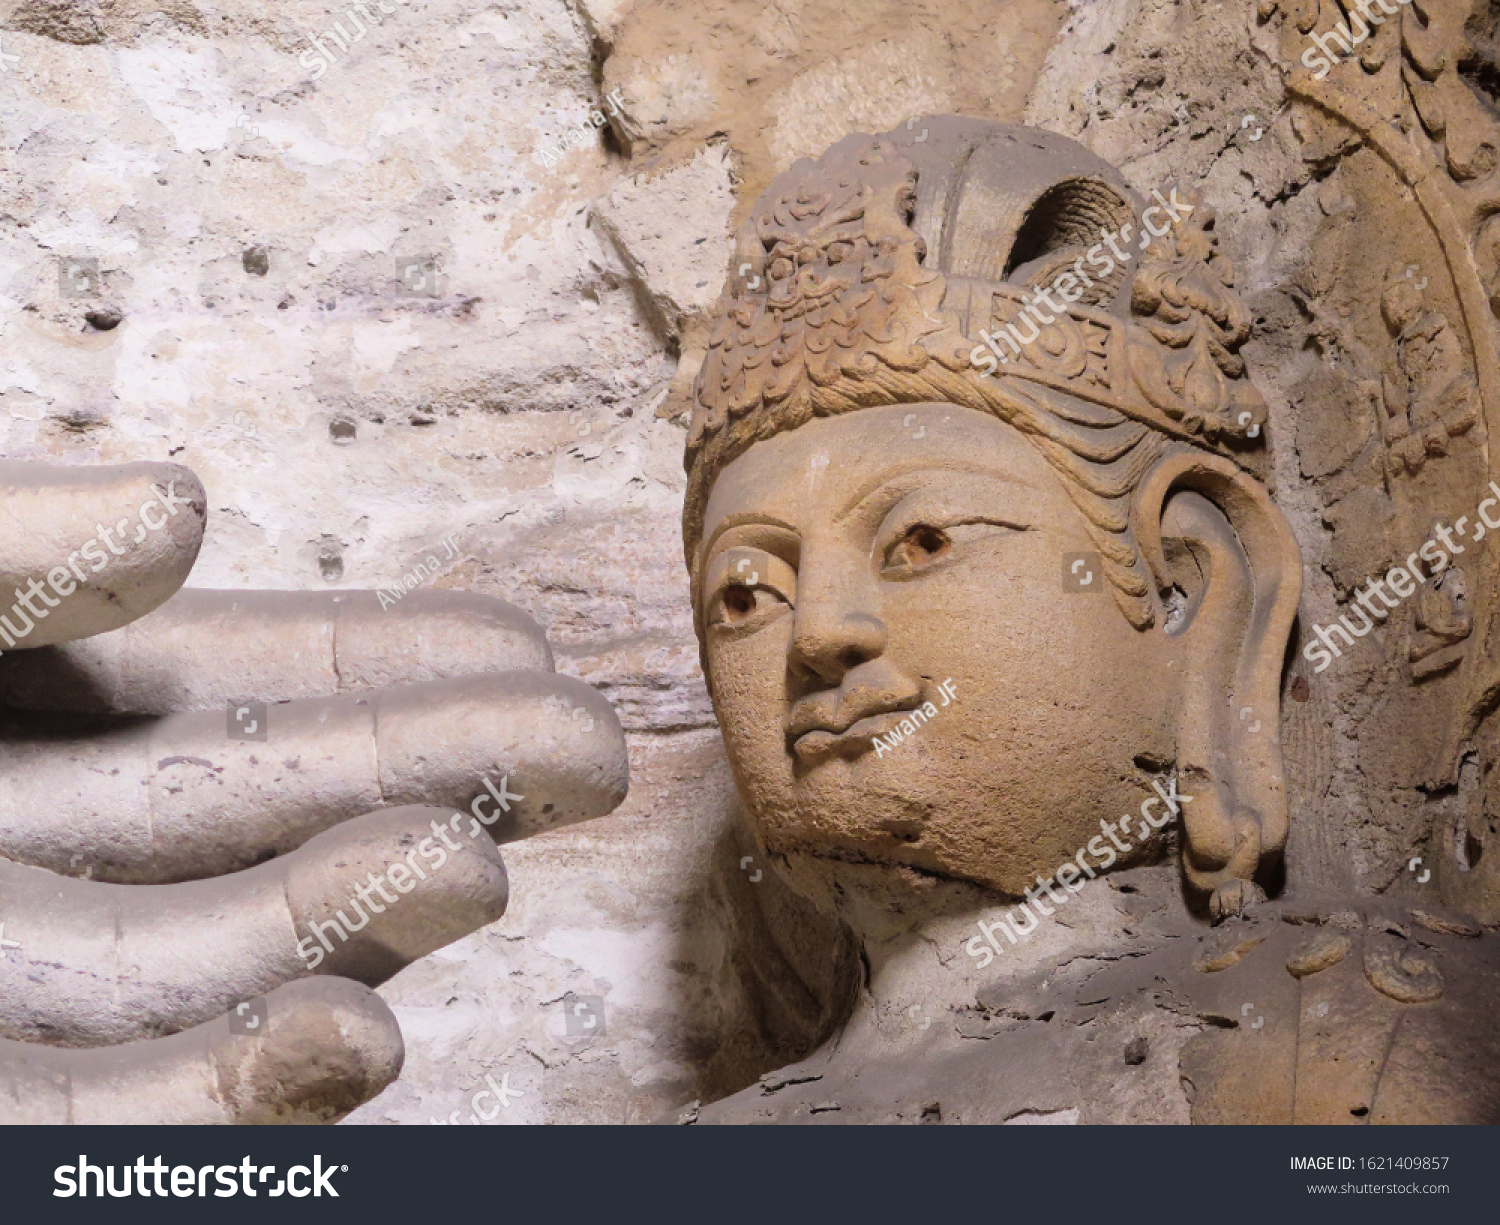 stock-photo-closeup-of-fingers-and-buddh